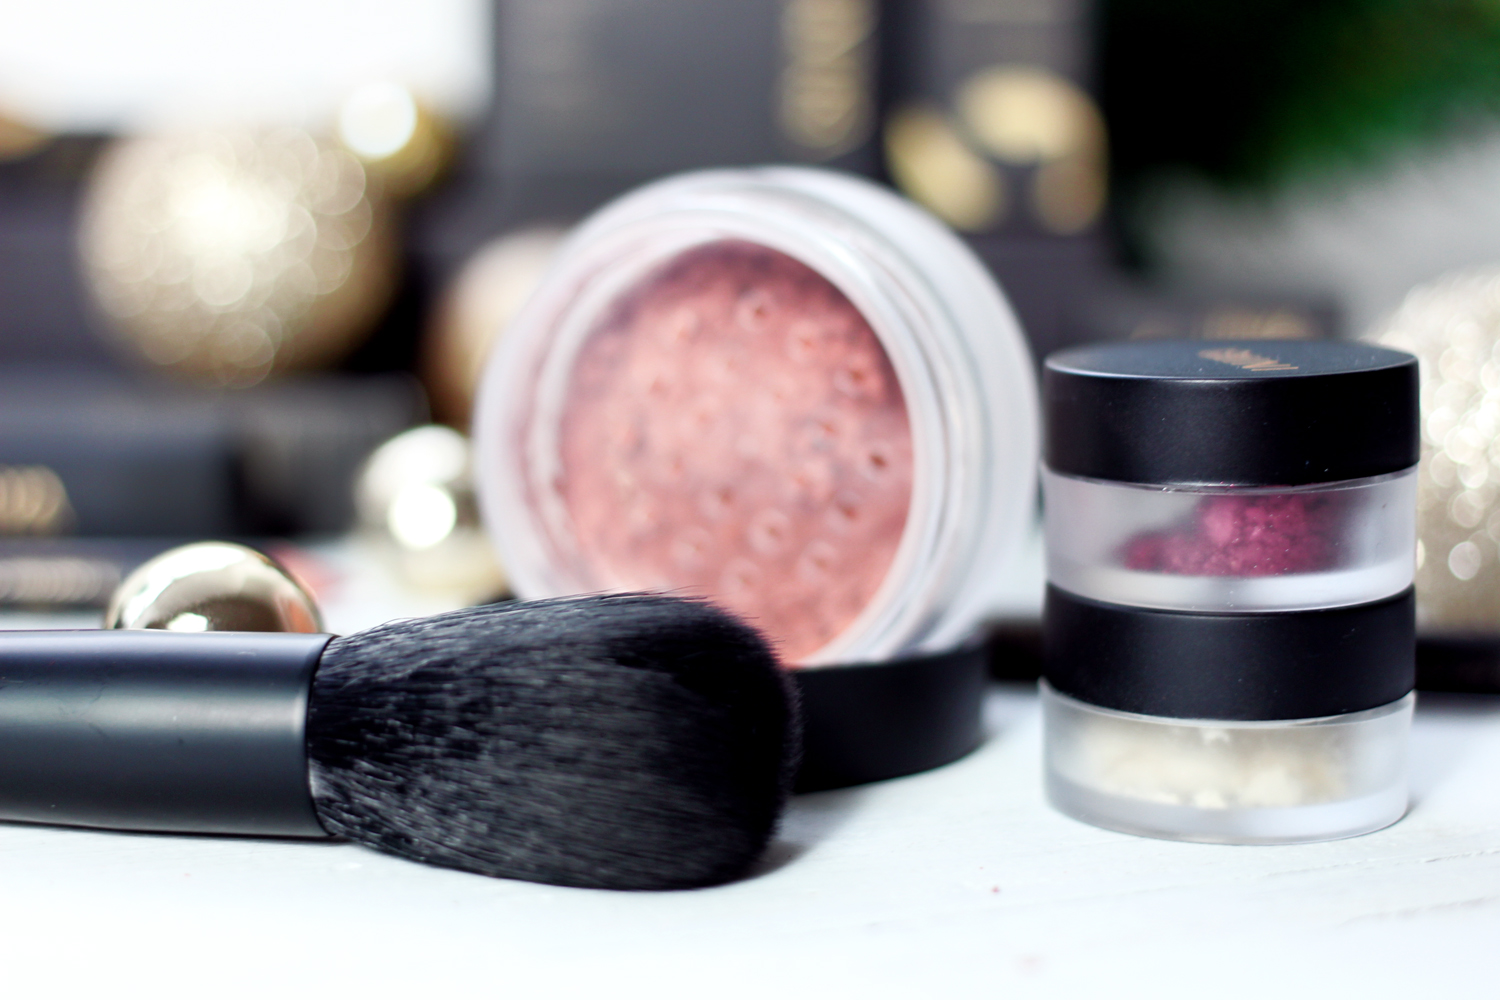 A beauty blogger reviews Inika Organic Cosmetics